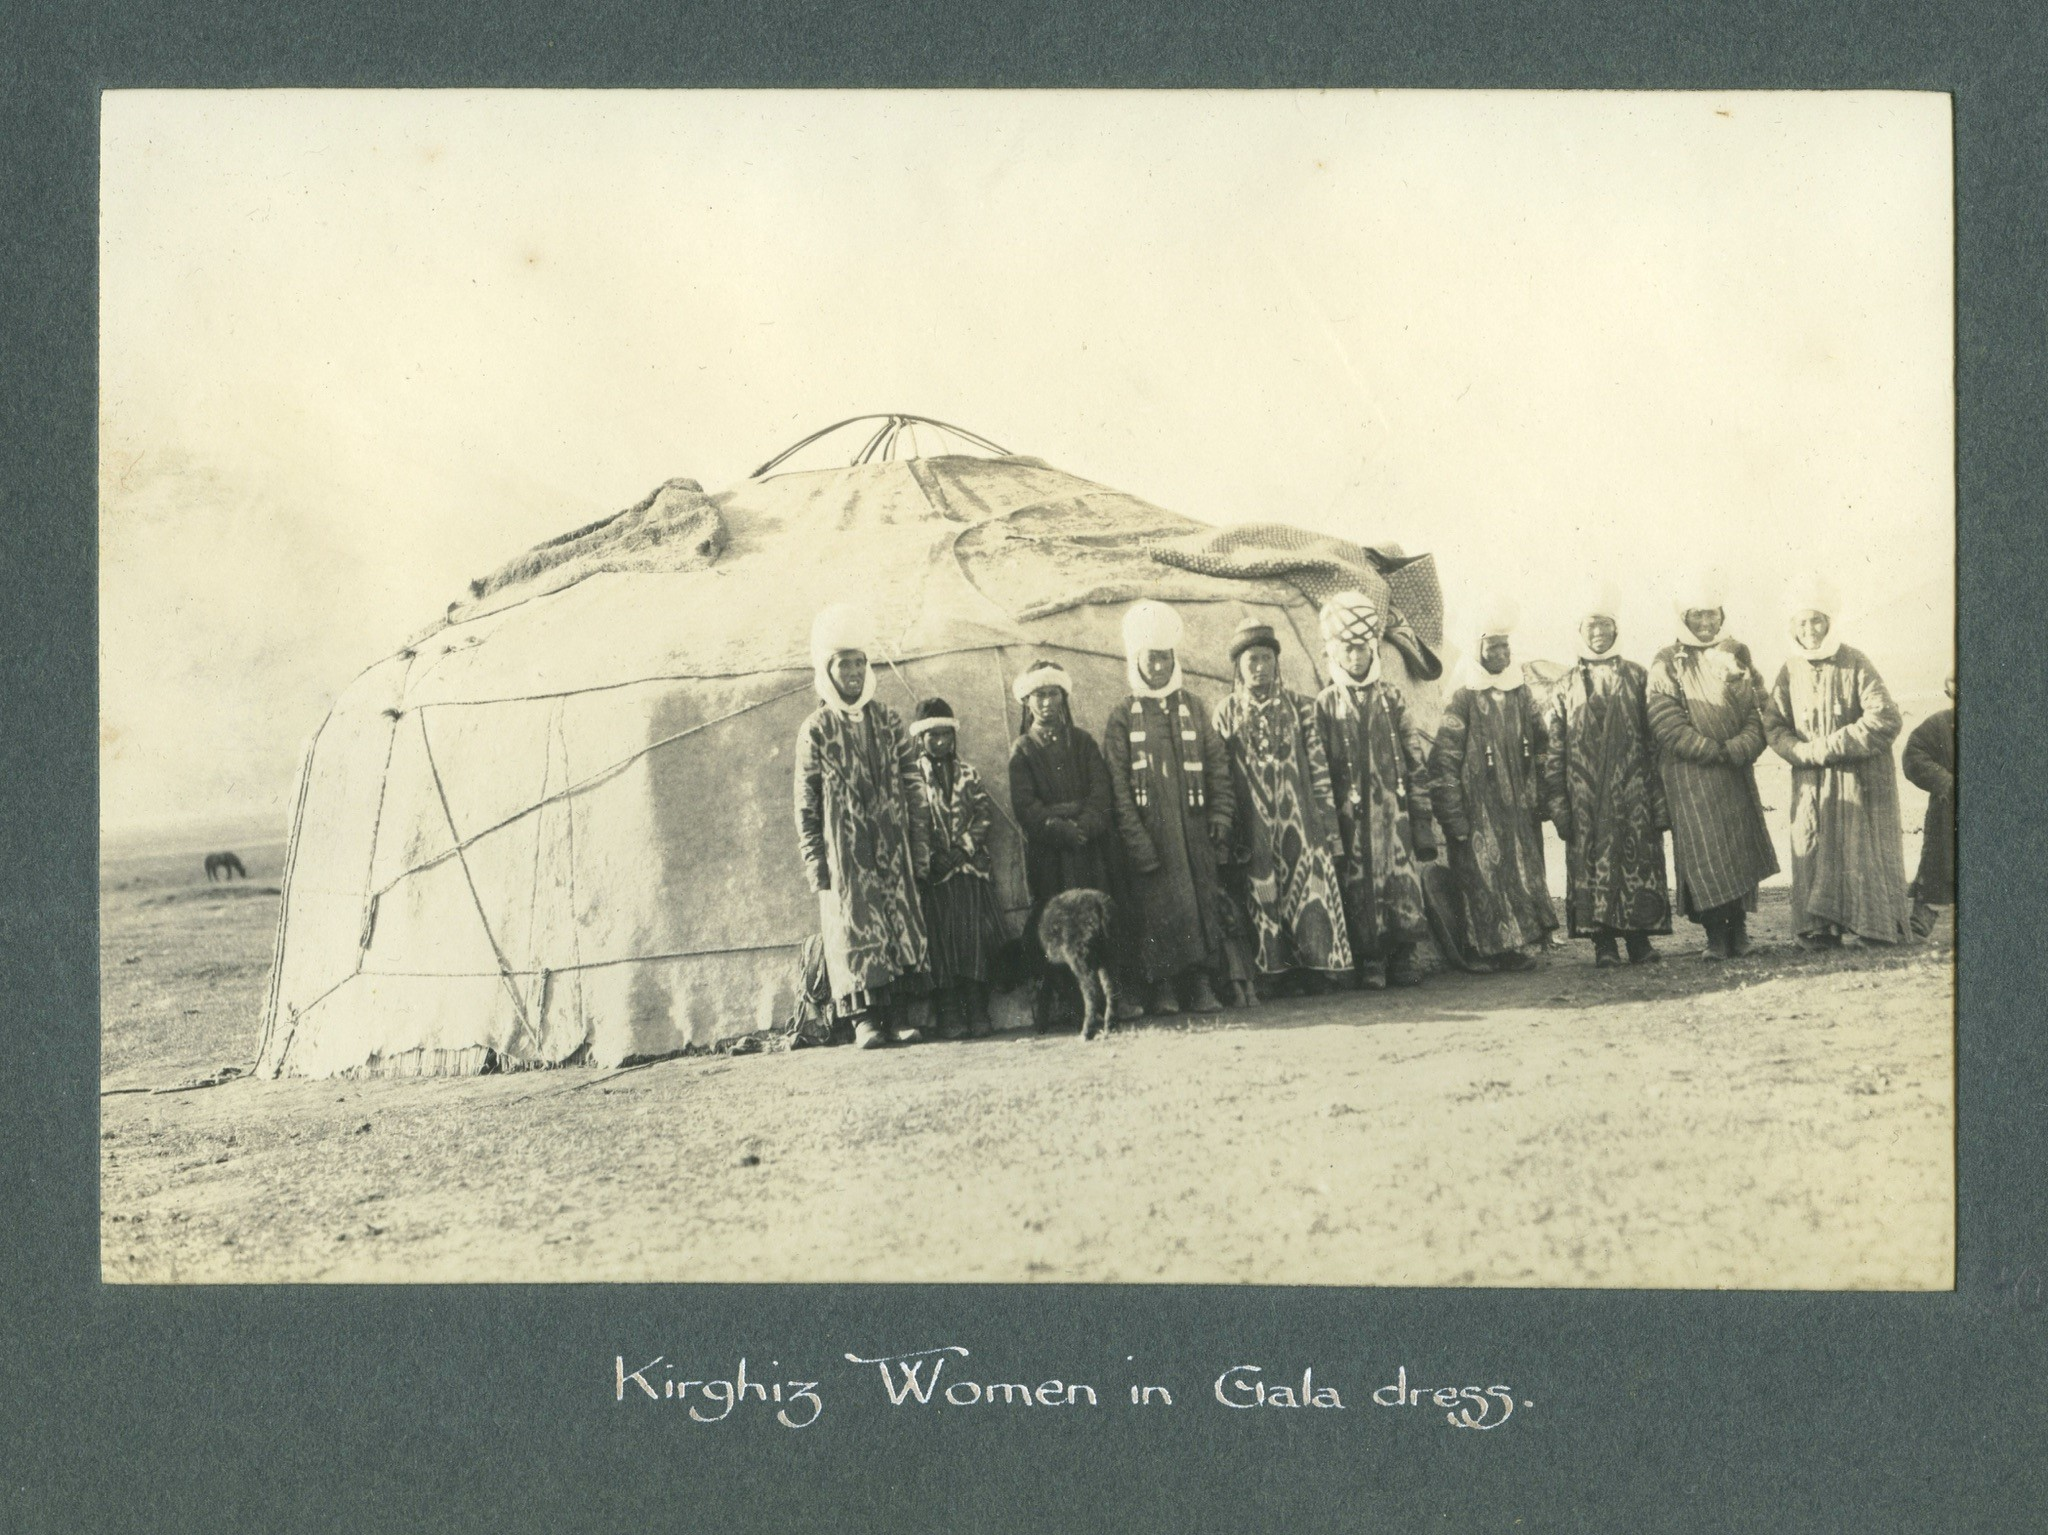 Kirghiz women standing together in front of a yurt.